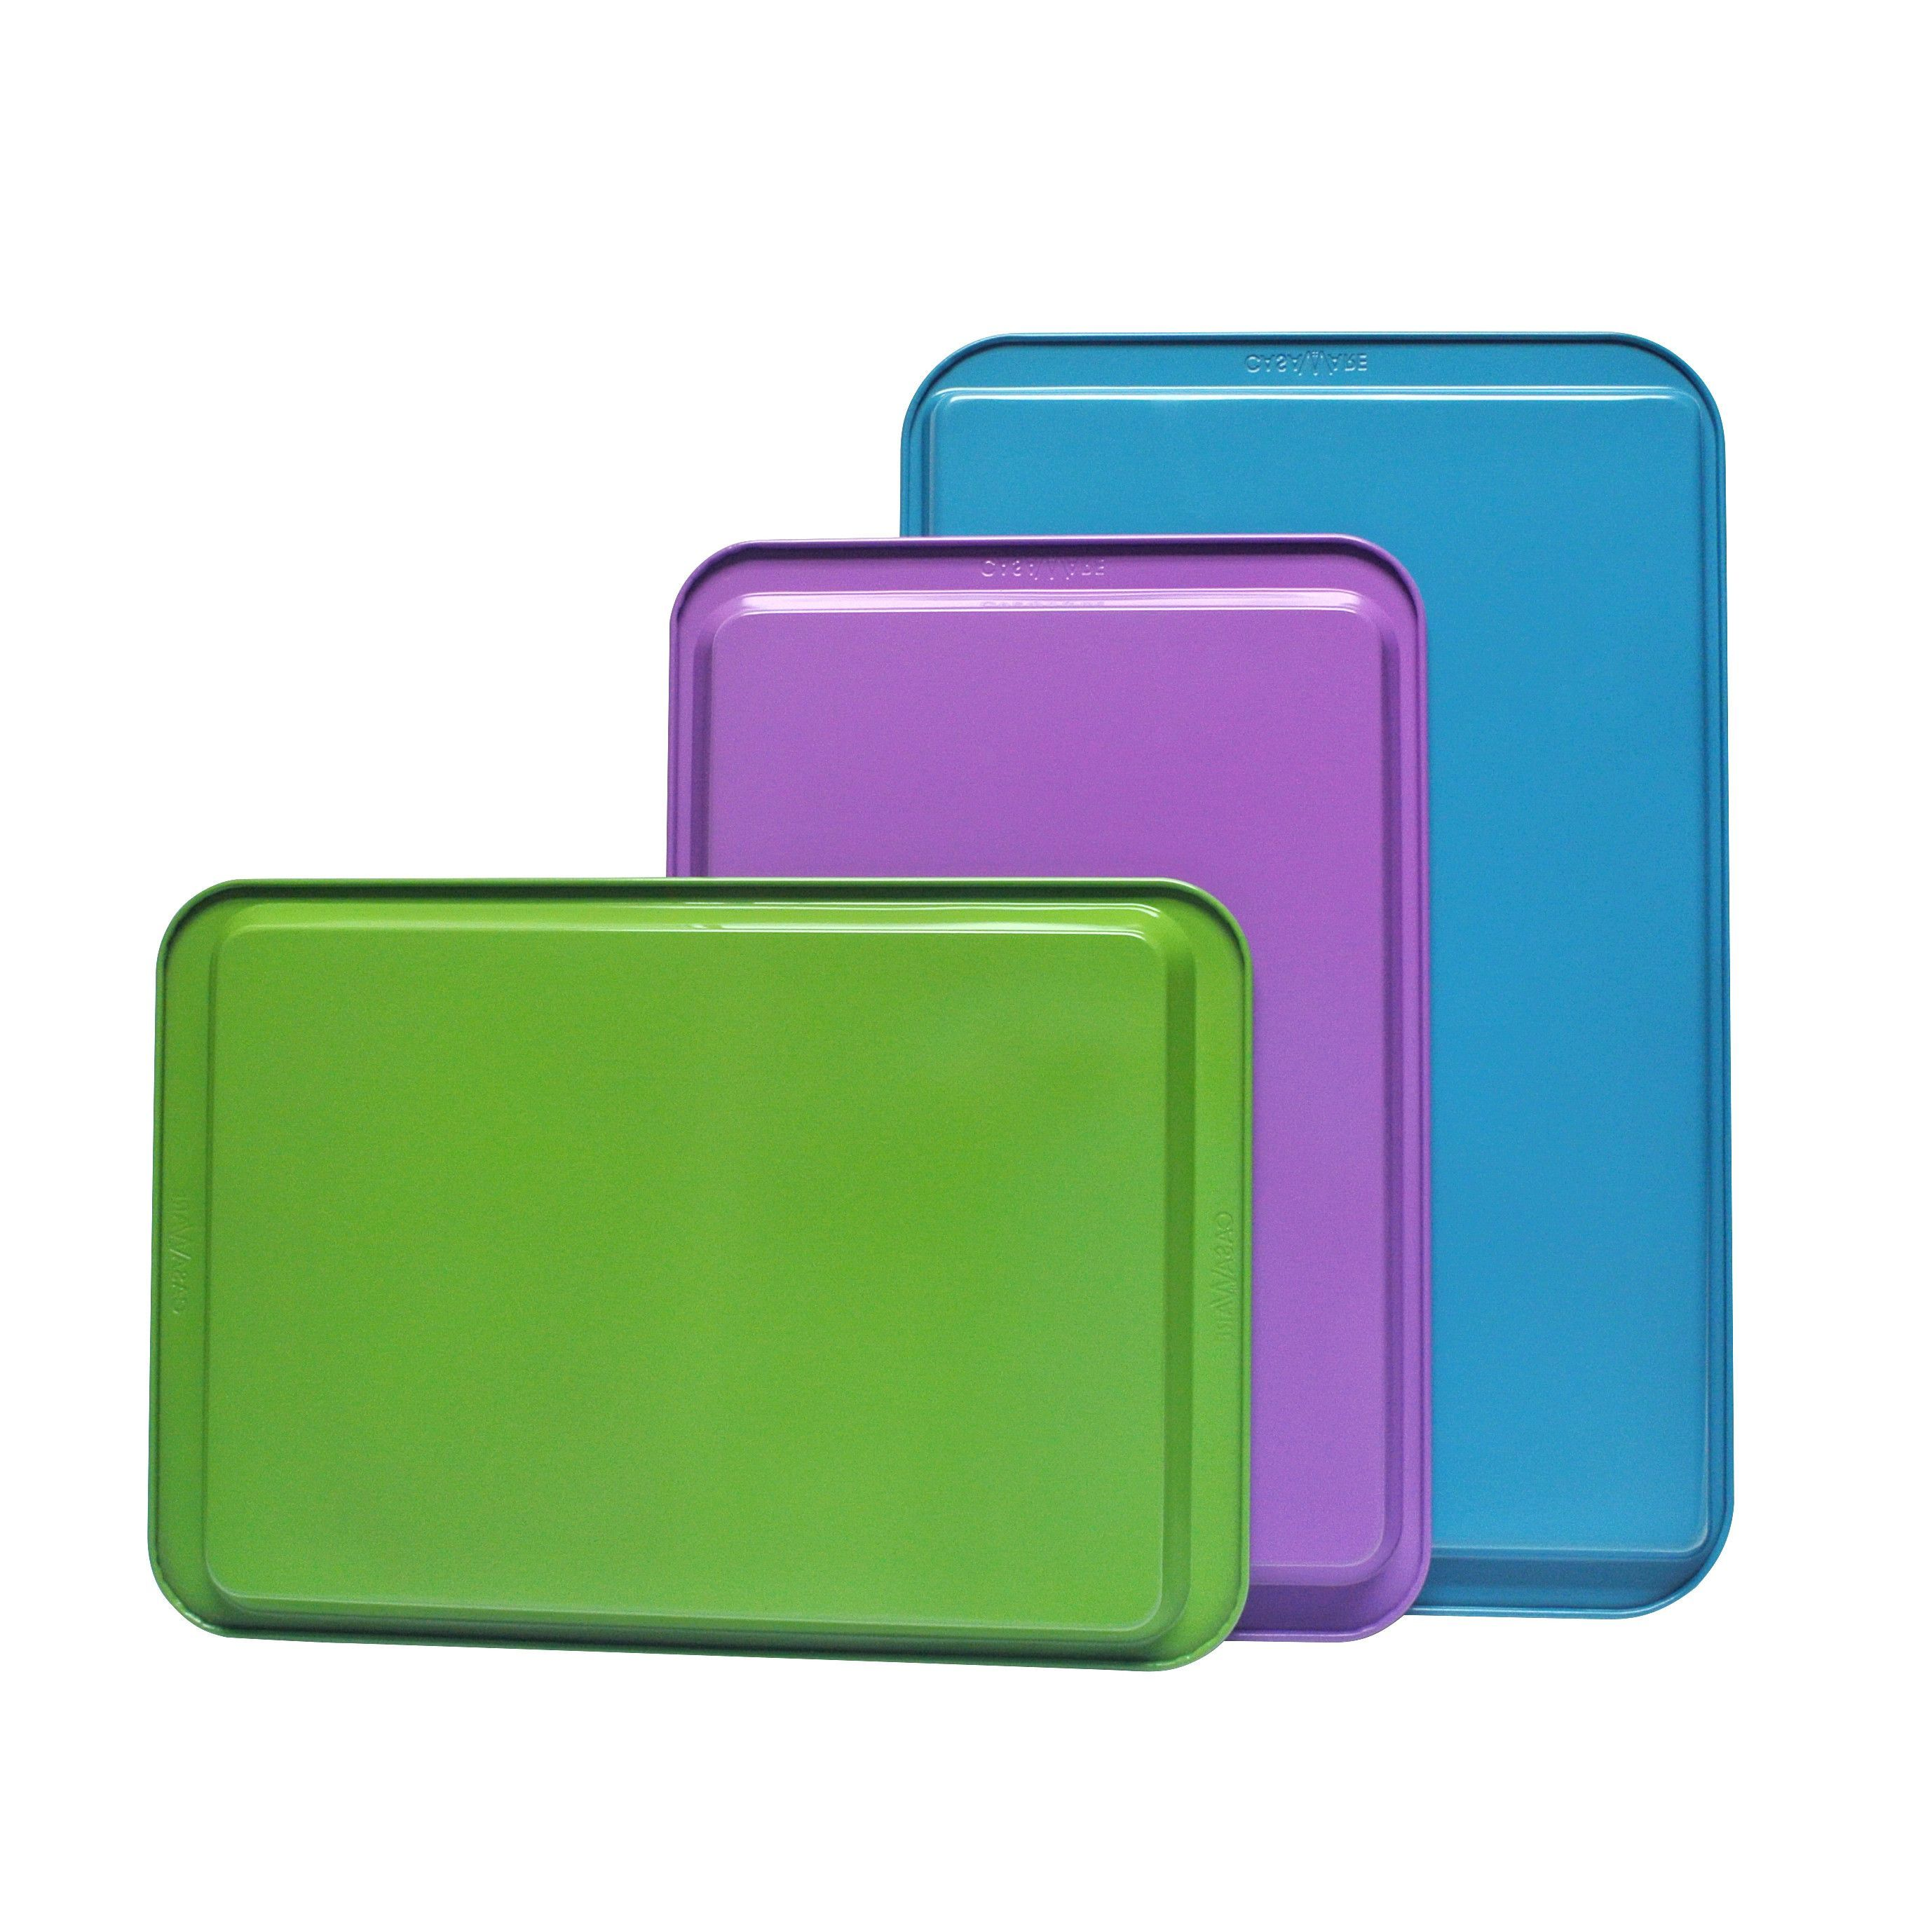 casaWare 3pc Ceramic Coated Multi-Color and Size Cookie Sheet ...